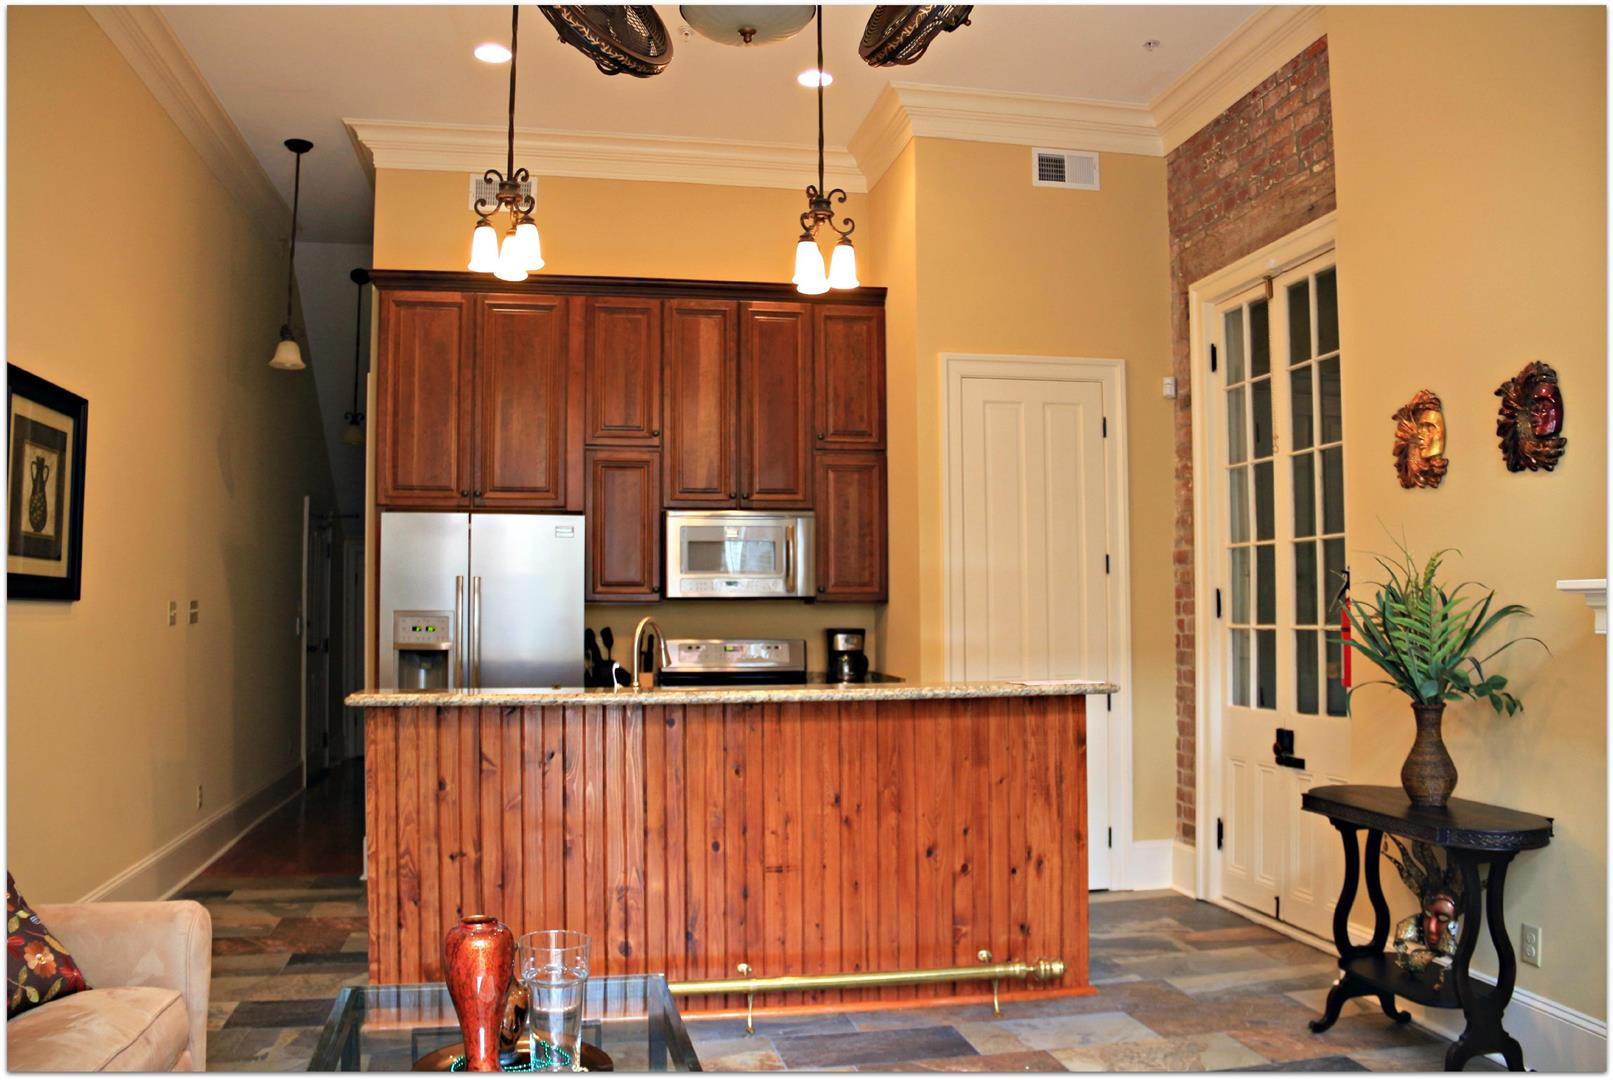 1027ChartresA,Kitchen.jpg